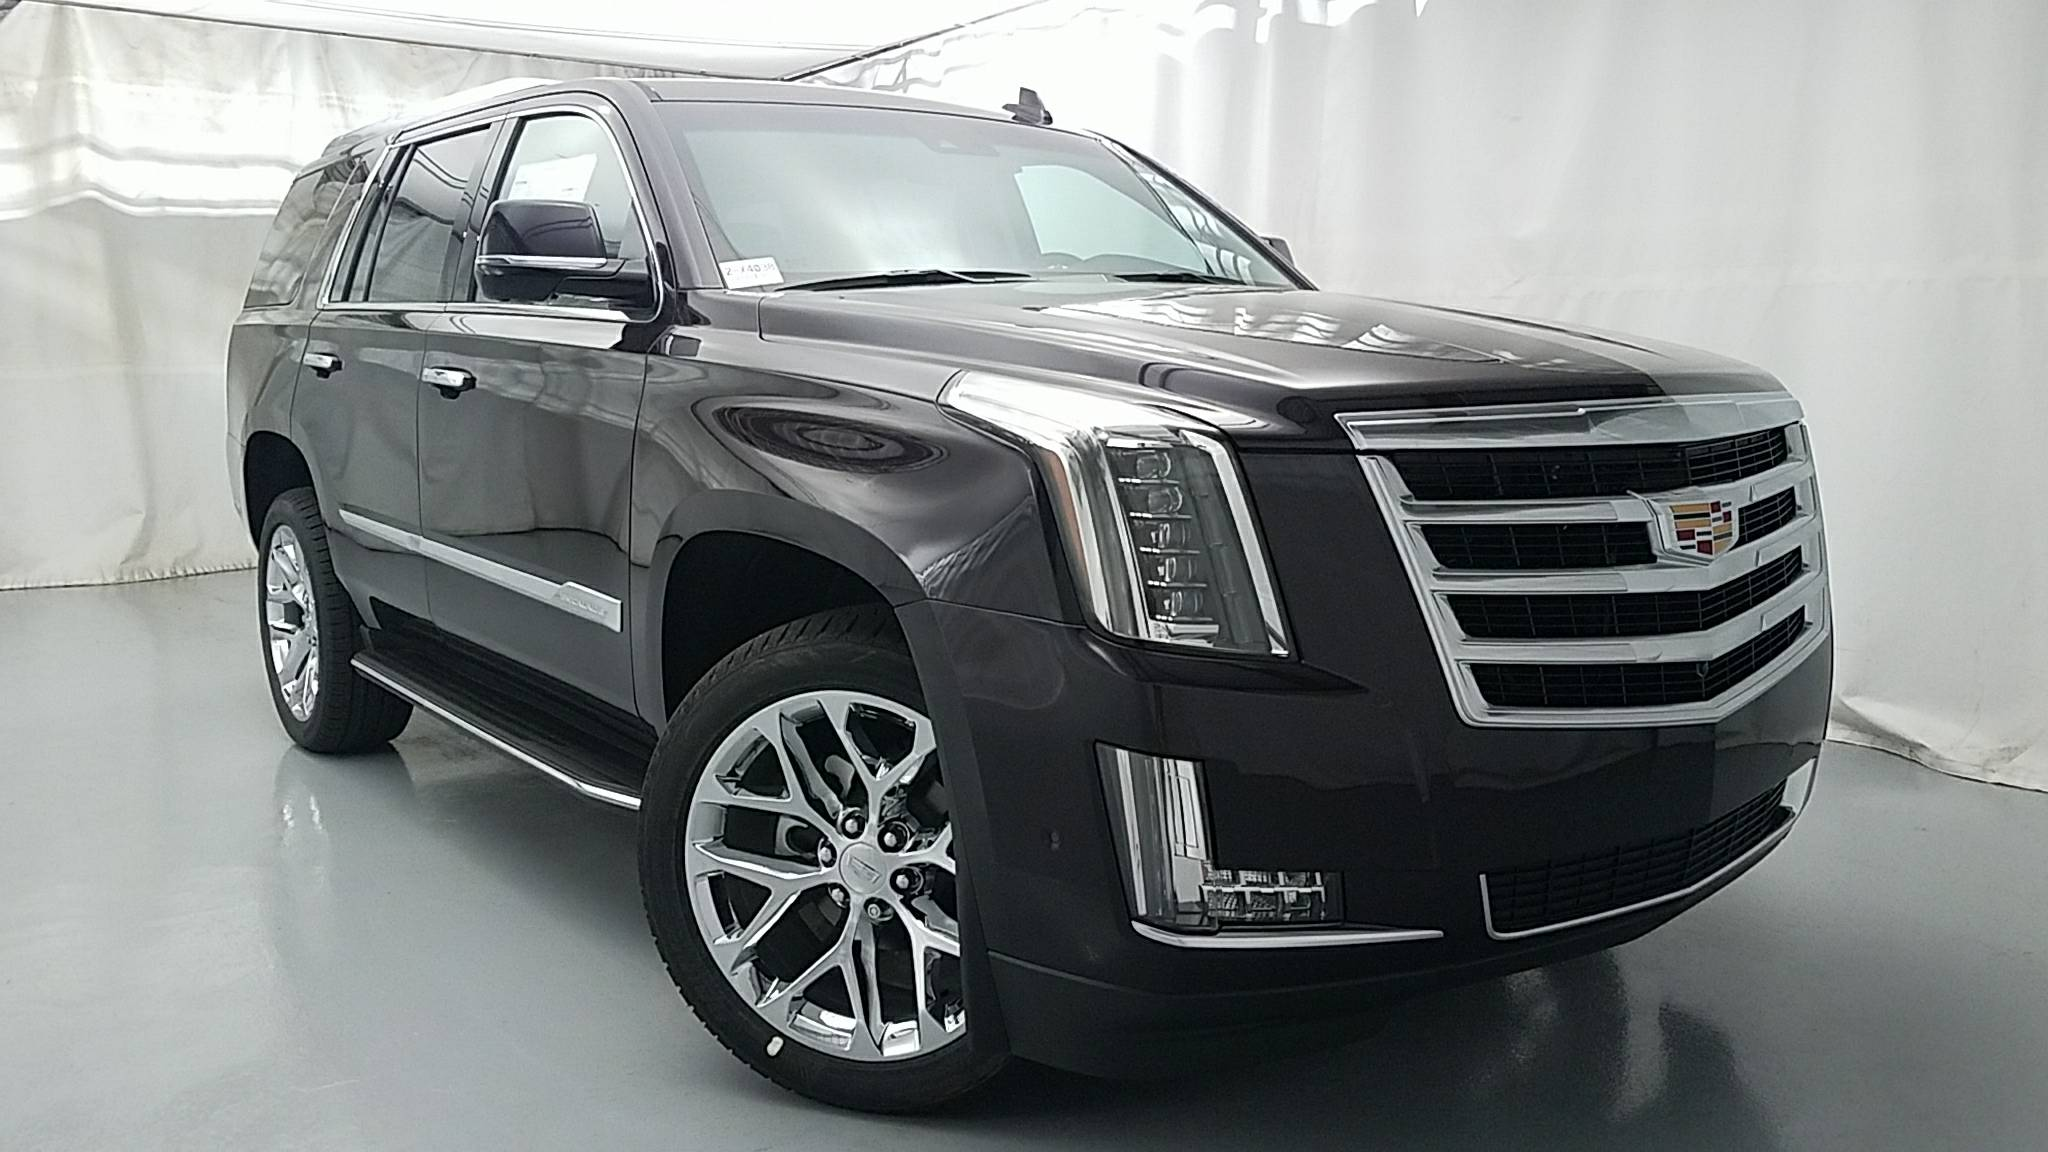 All 2018 Cadillac Escalade At Ross Downing In Hammond And Gonzales Fuel Filter Location Vehicle Photo La 70403